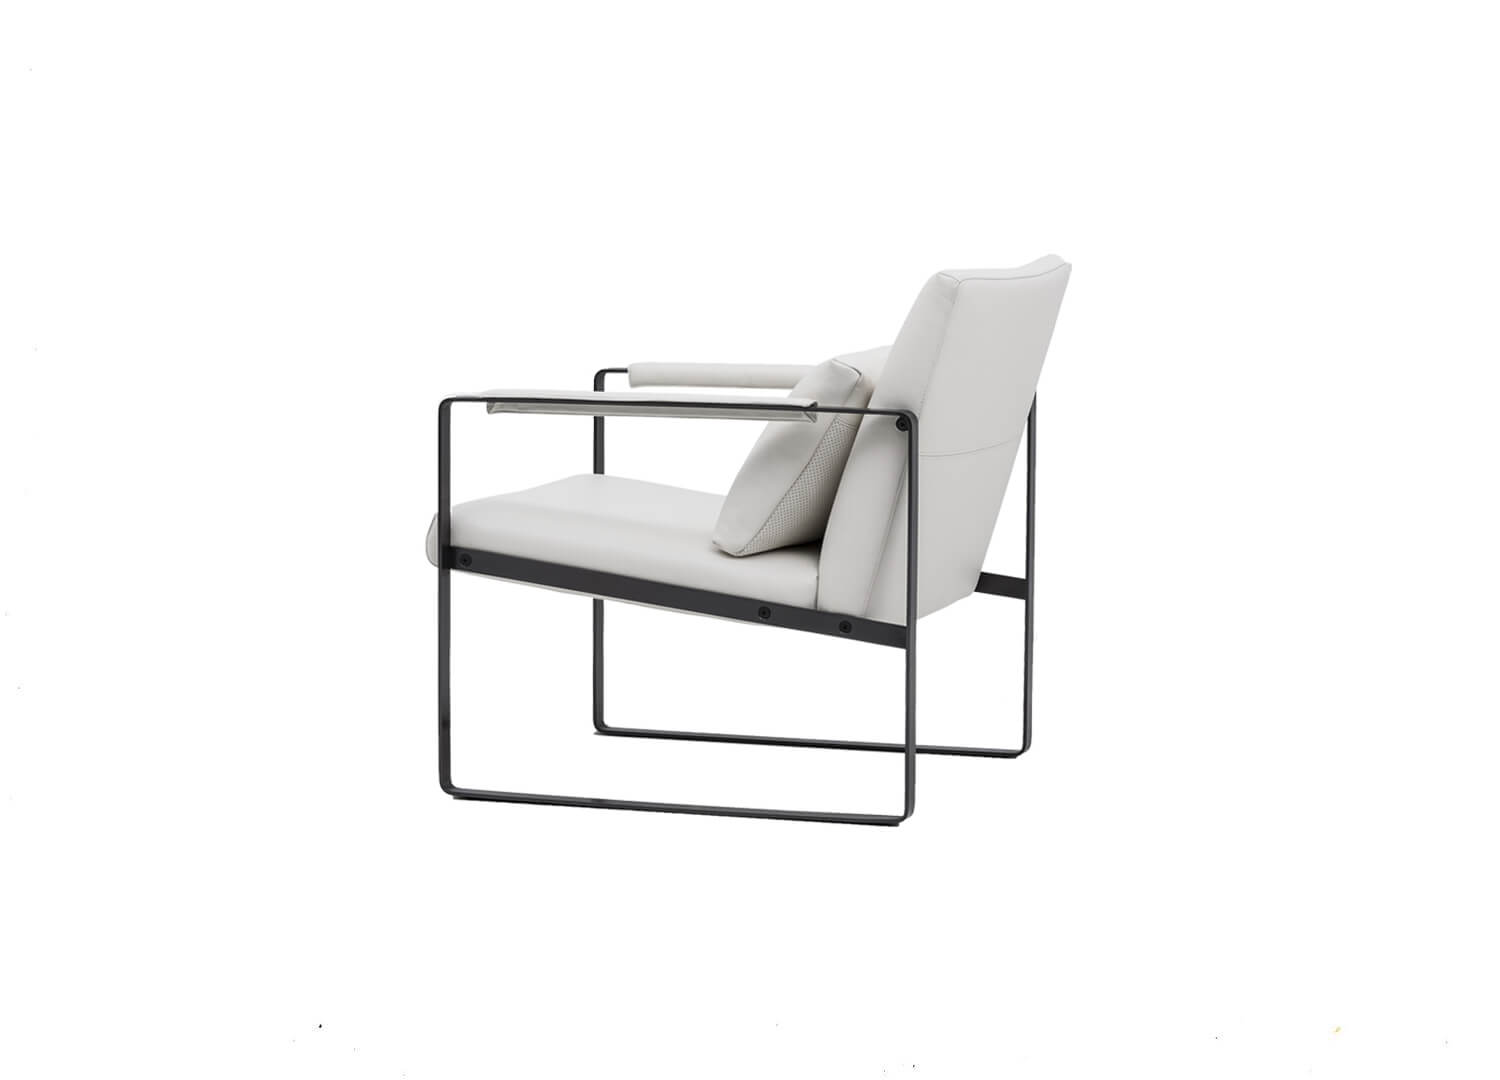 Wondrous Leman Lounge Chair By Camerich For Henri Living Est Living Pdpeps Interior Chair Design Pdpepsorg